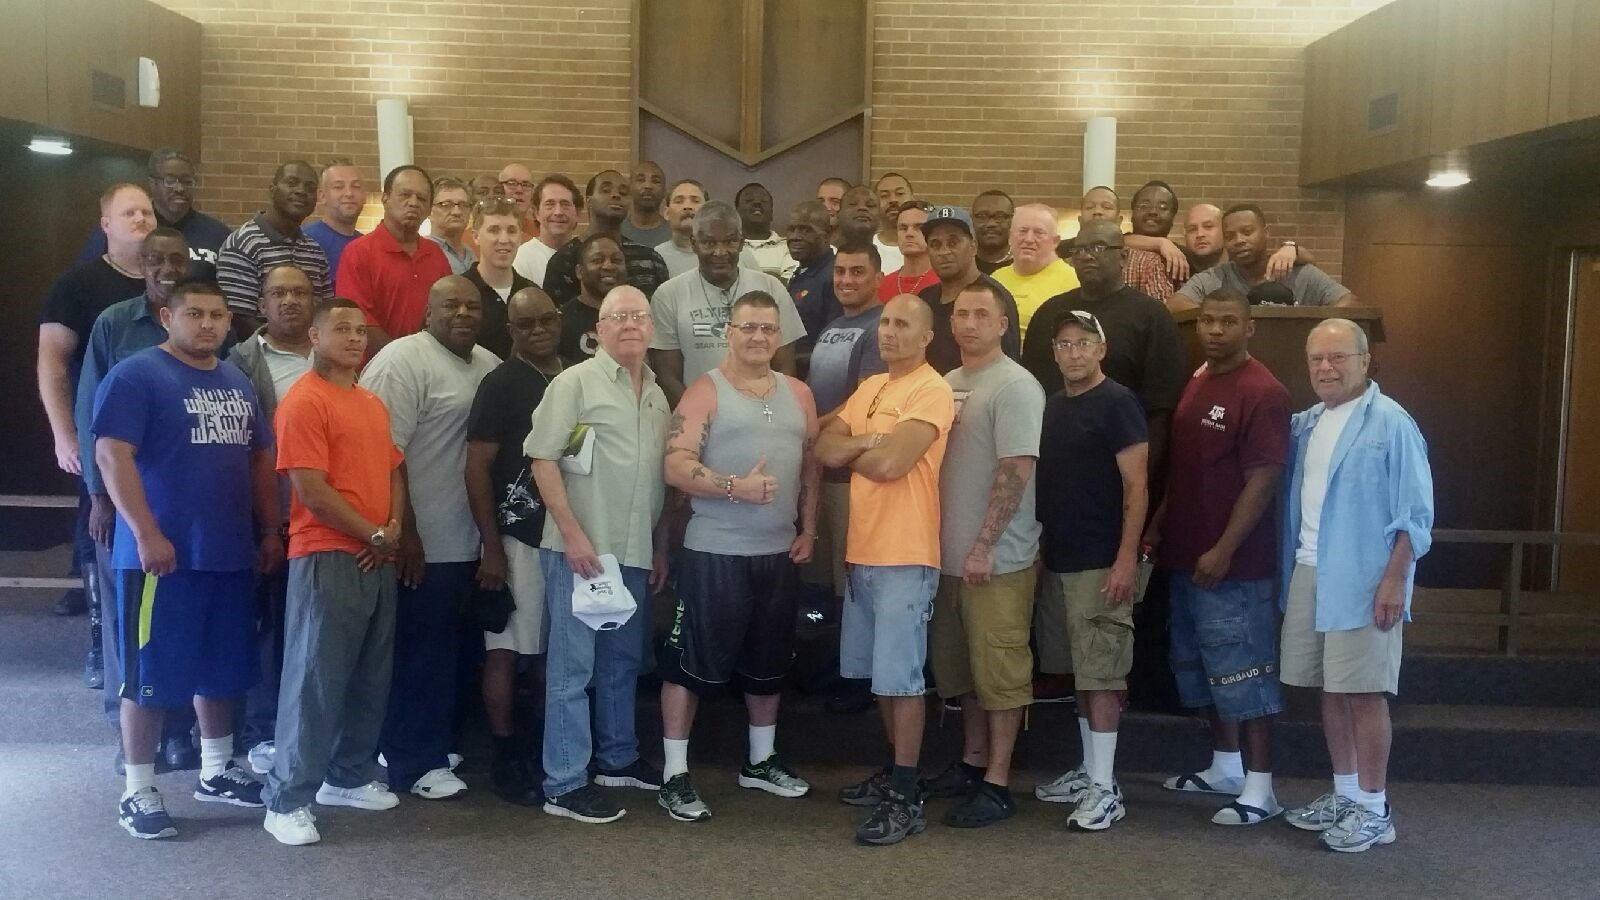 The staff and men at the end of weekend #8 at Camp Mohawk in partnership with Open Door Mission.